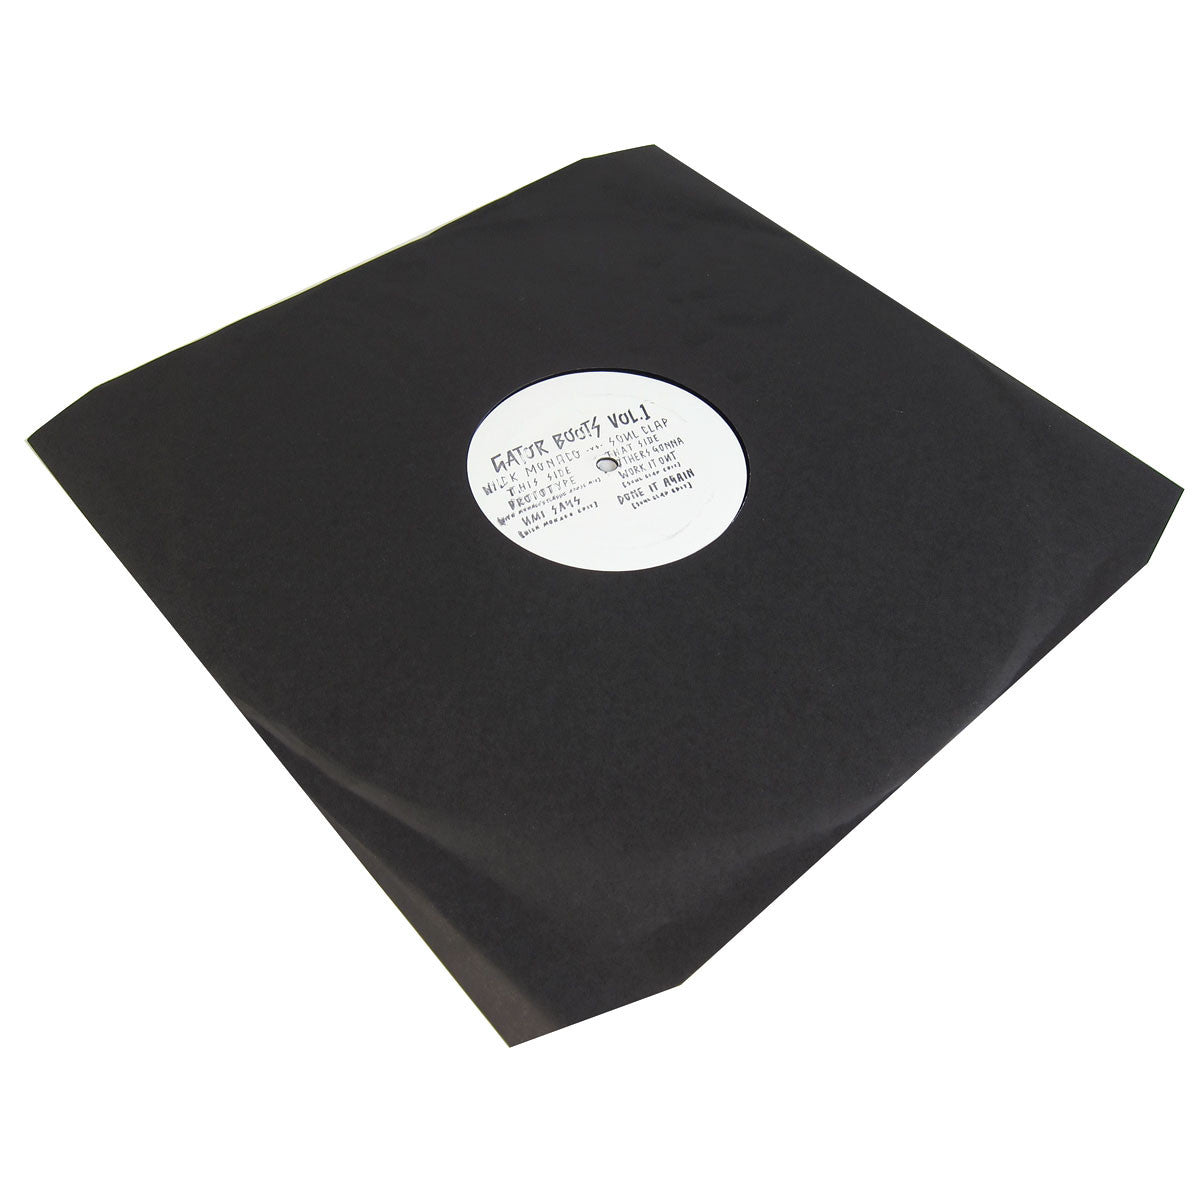 Soul Clap & Nick Monaco: Gator Boots Vol.1 (Umi Says, Grace Jones) 12""